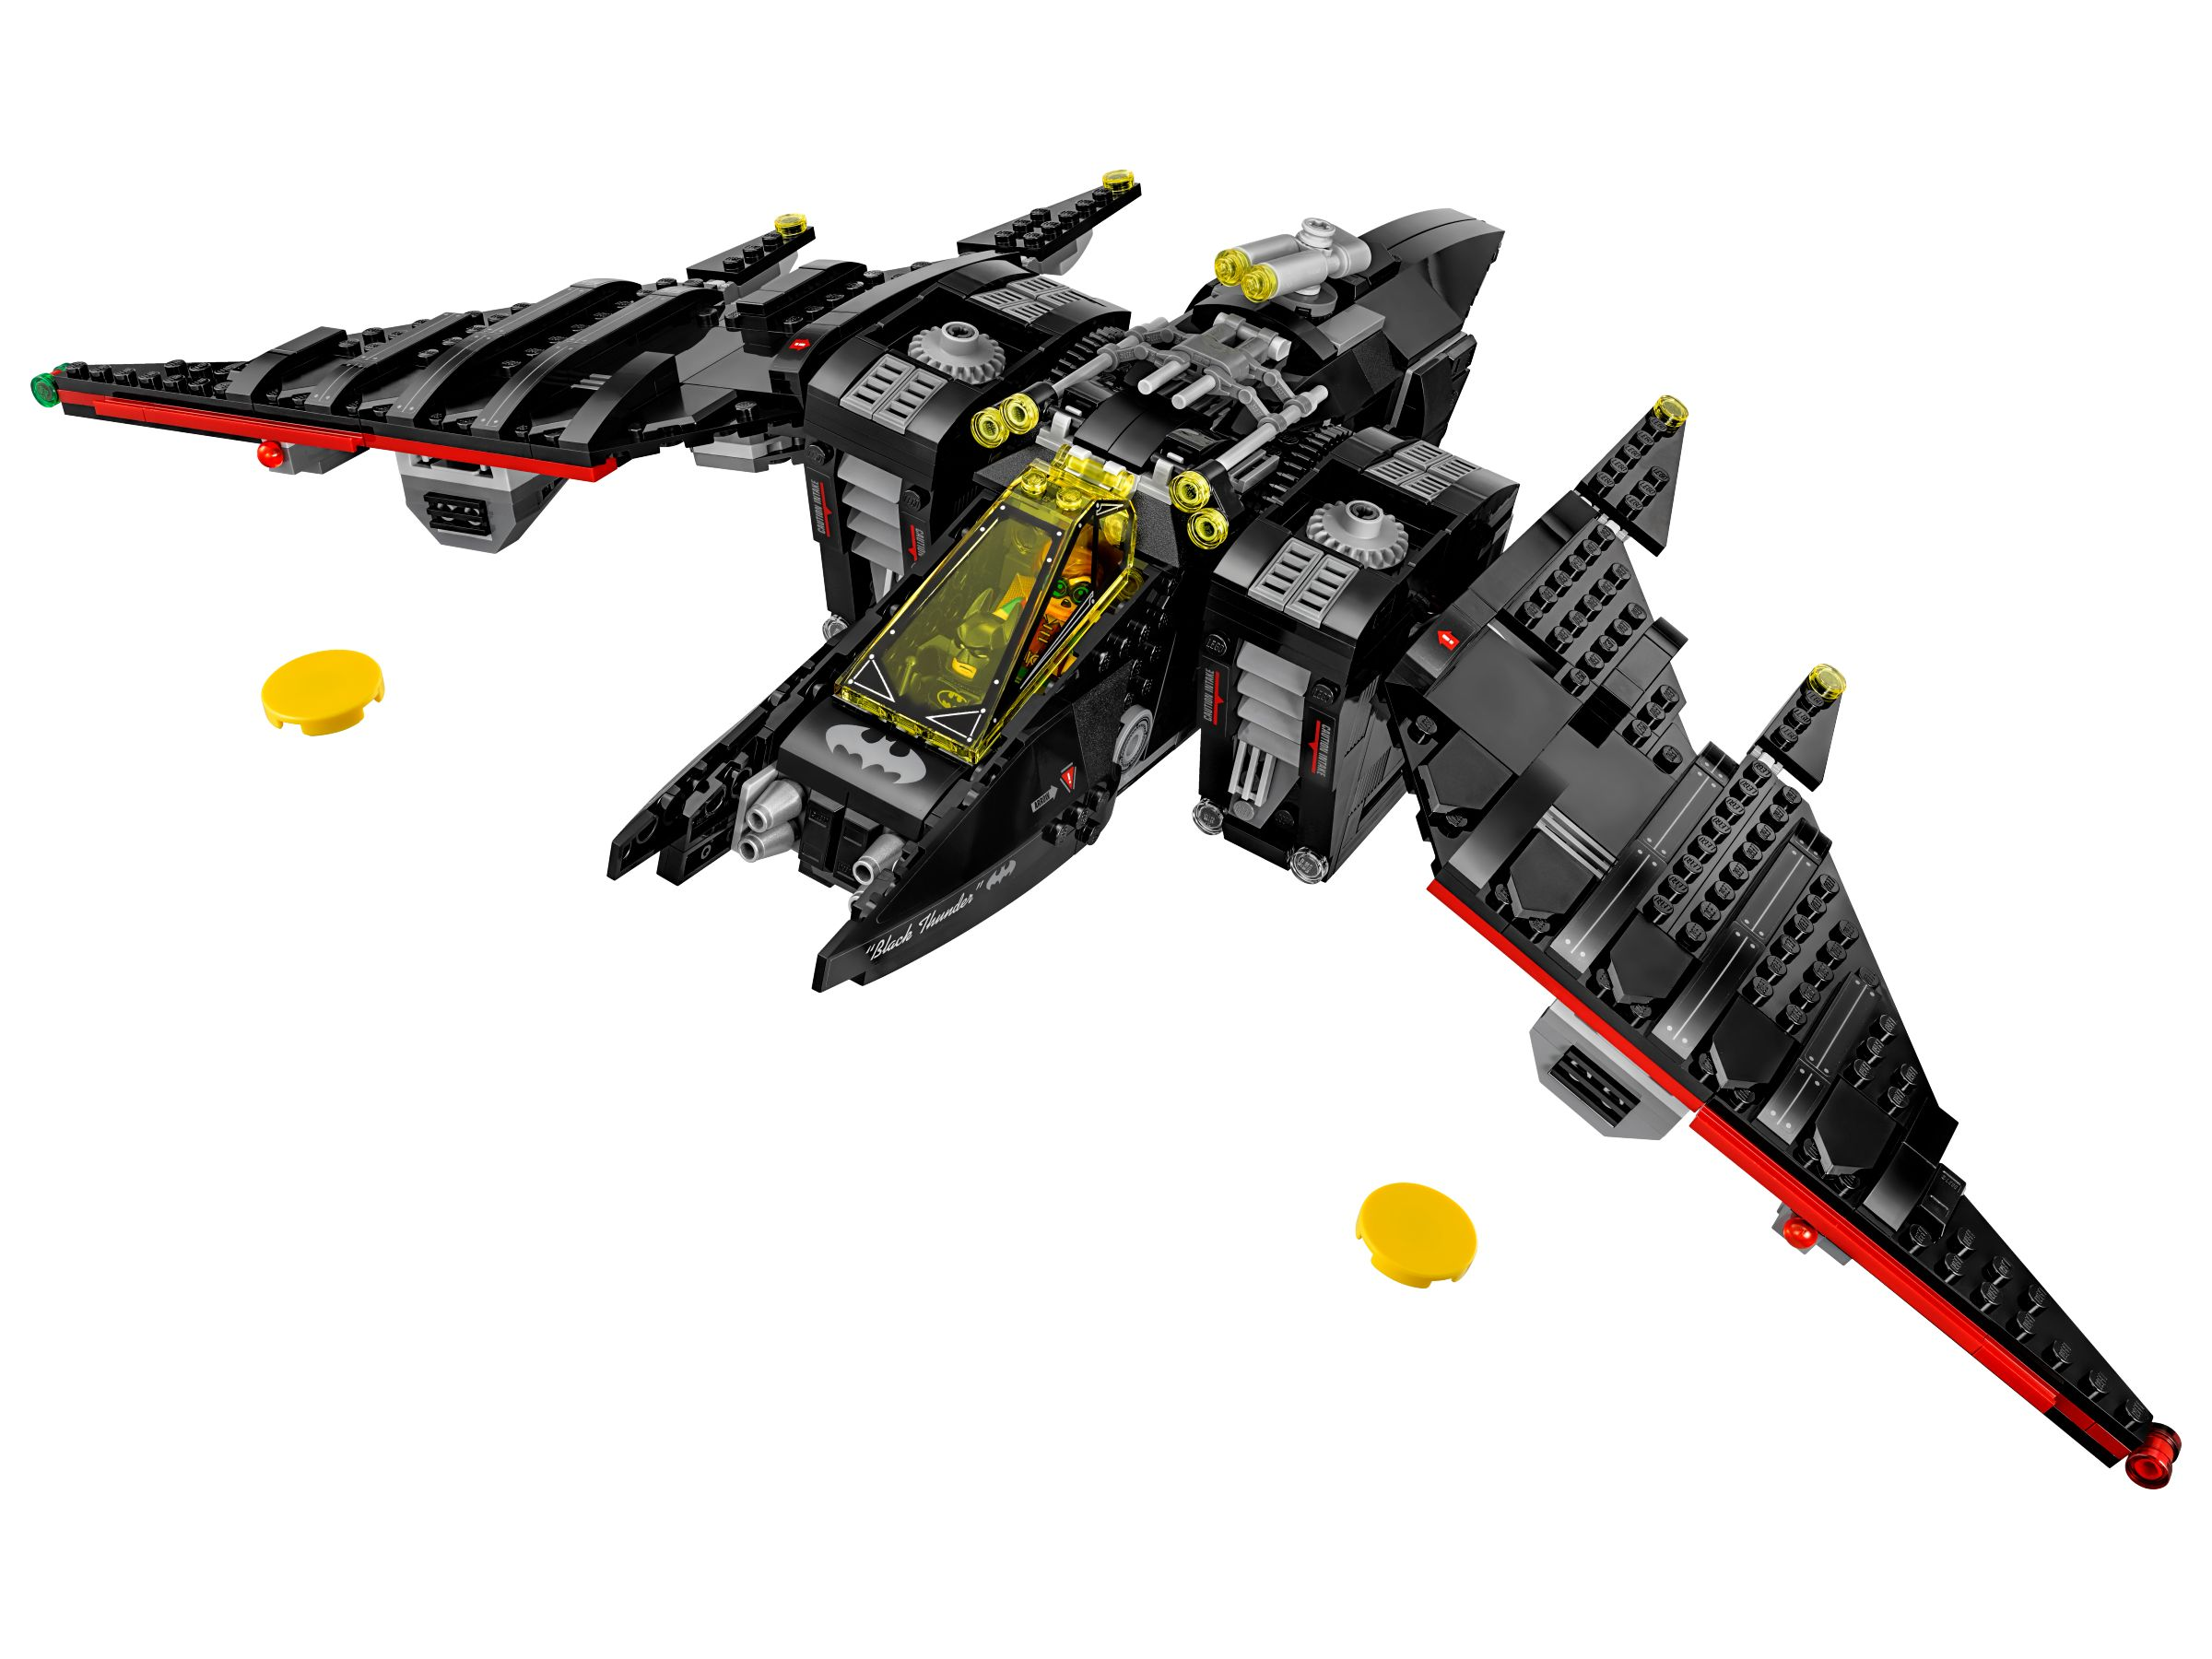 LEGO The LEGO Batman Movie 70916 Batwing LEGO_70916_alt2.jpg